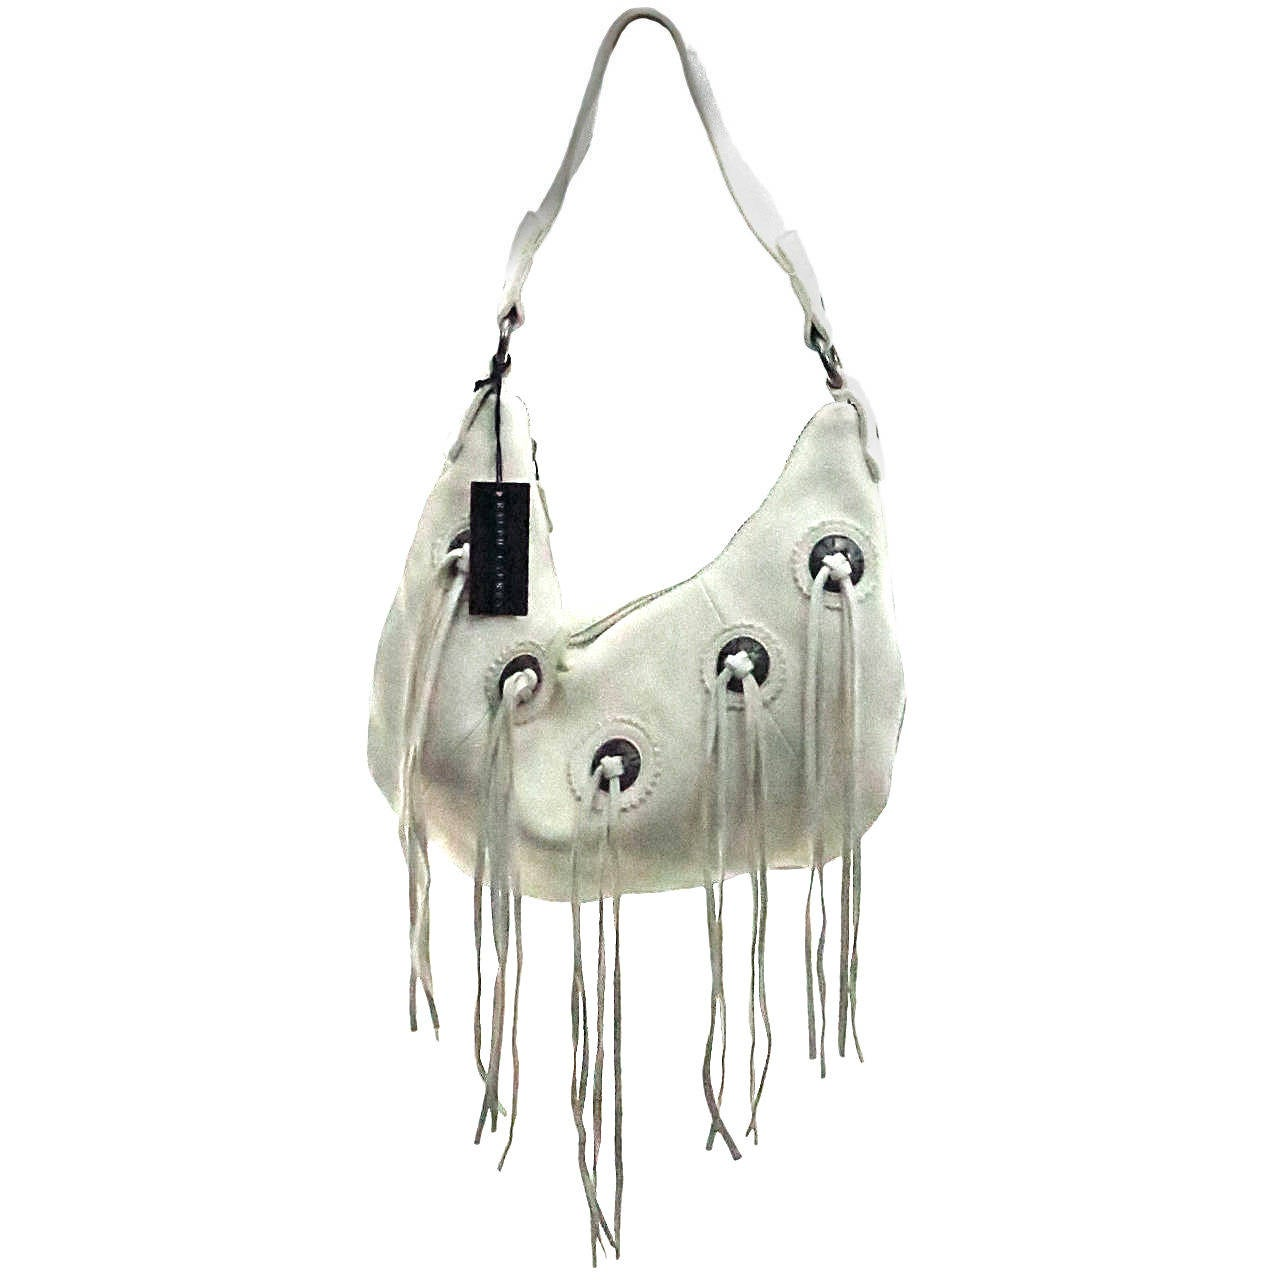 Ralph Lauren soft white leather fringe shoulder handbag NWT